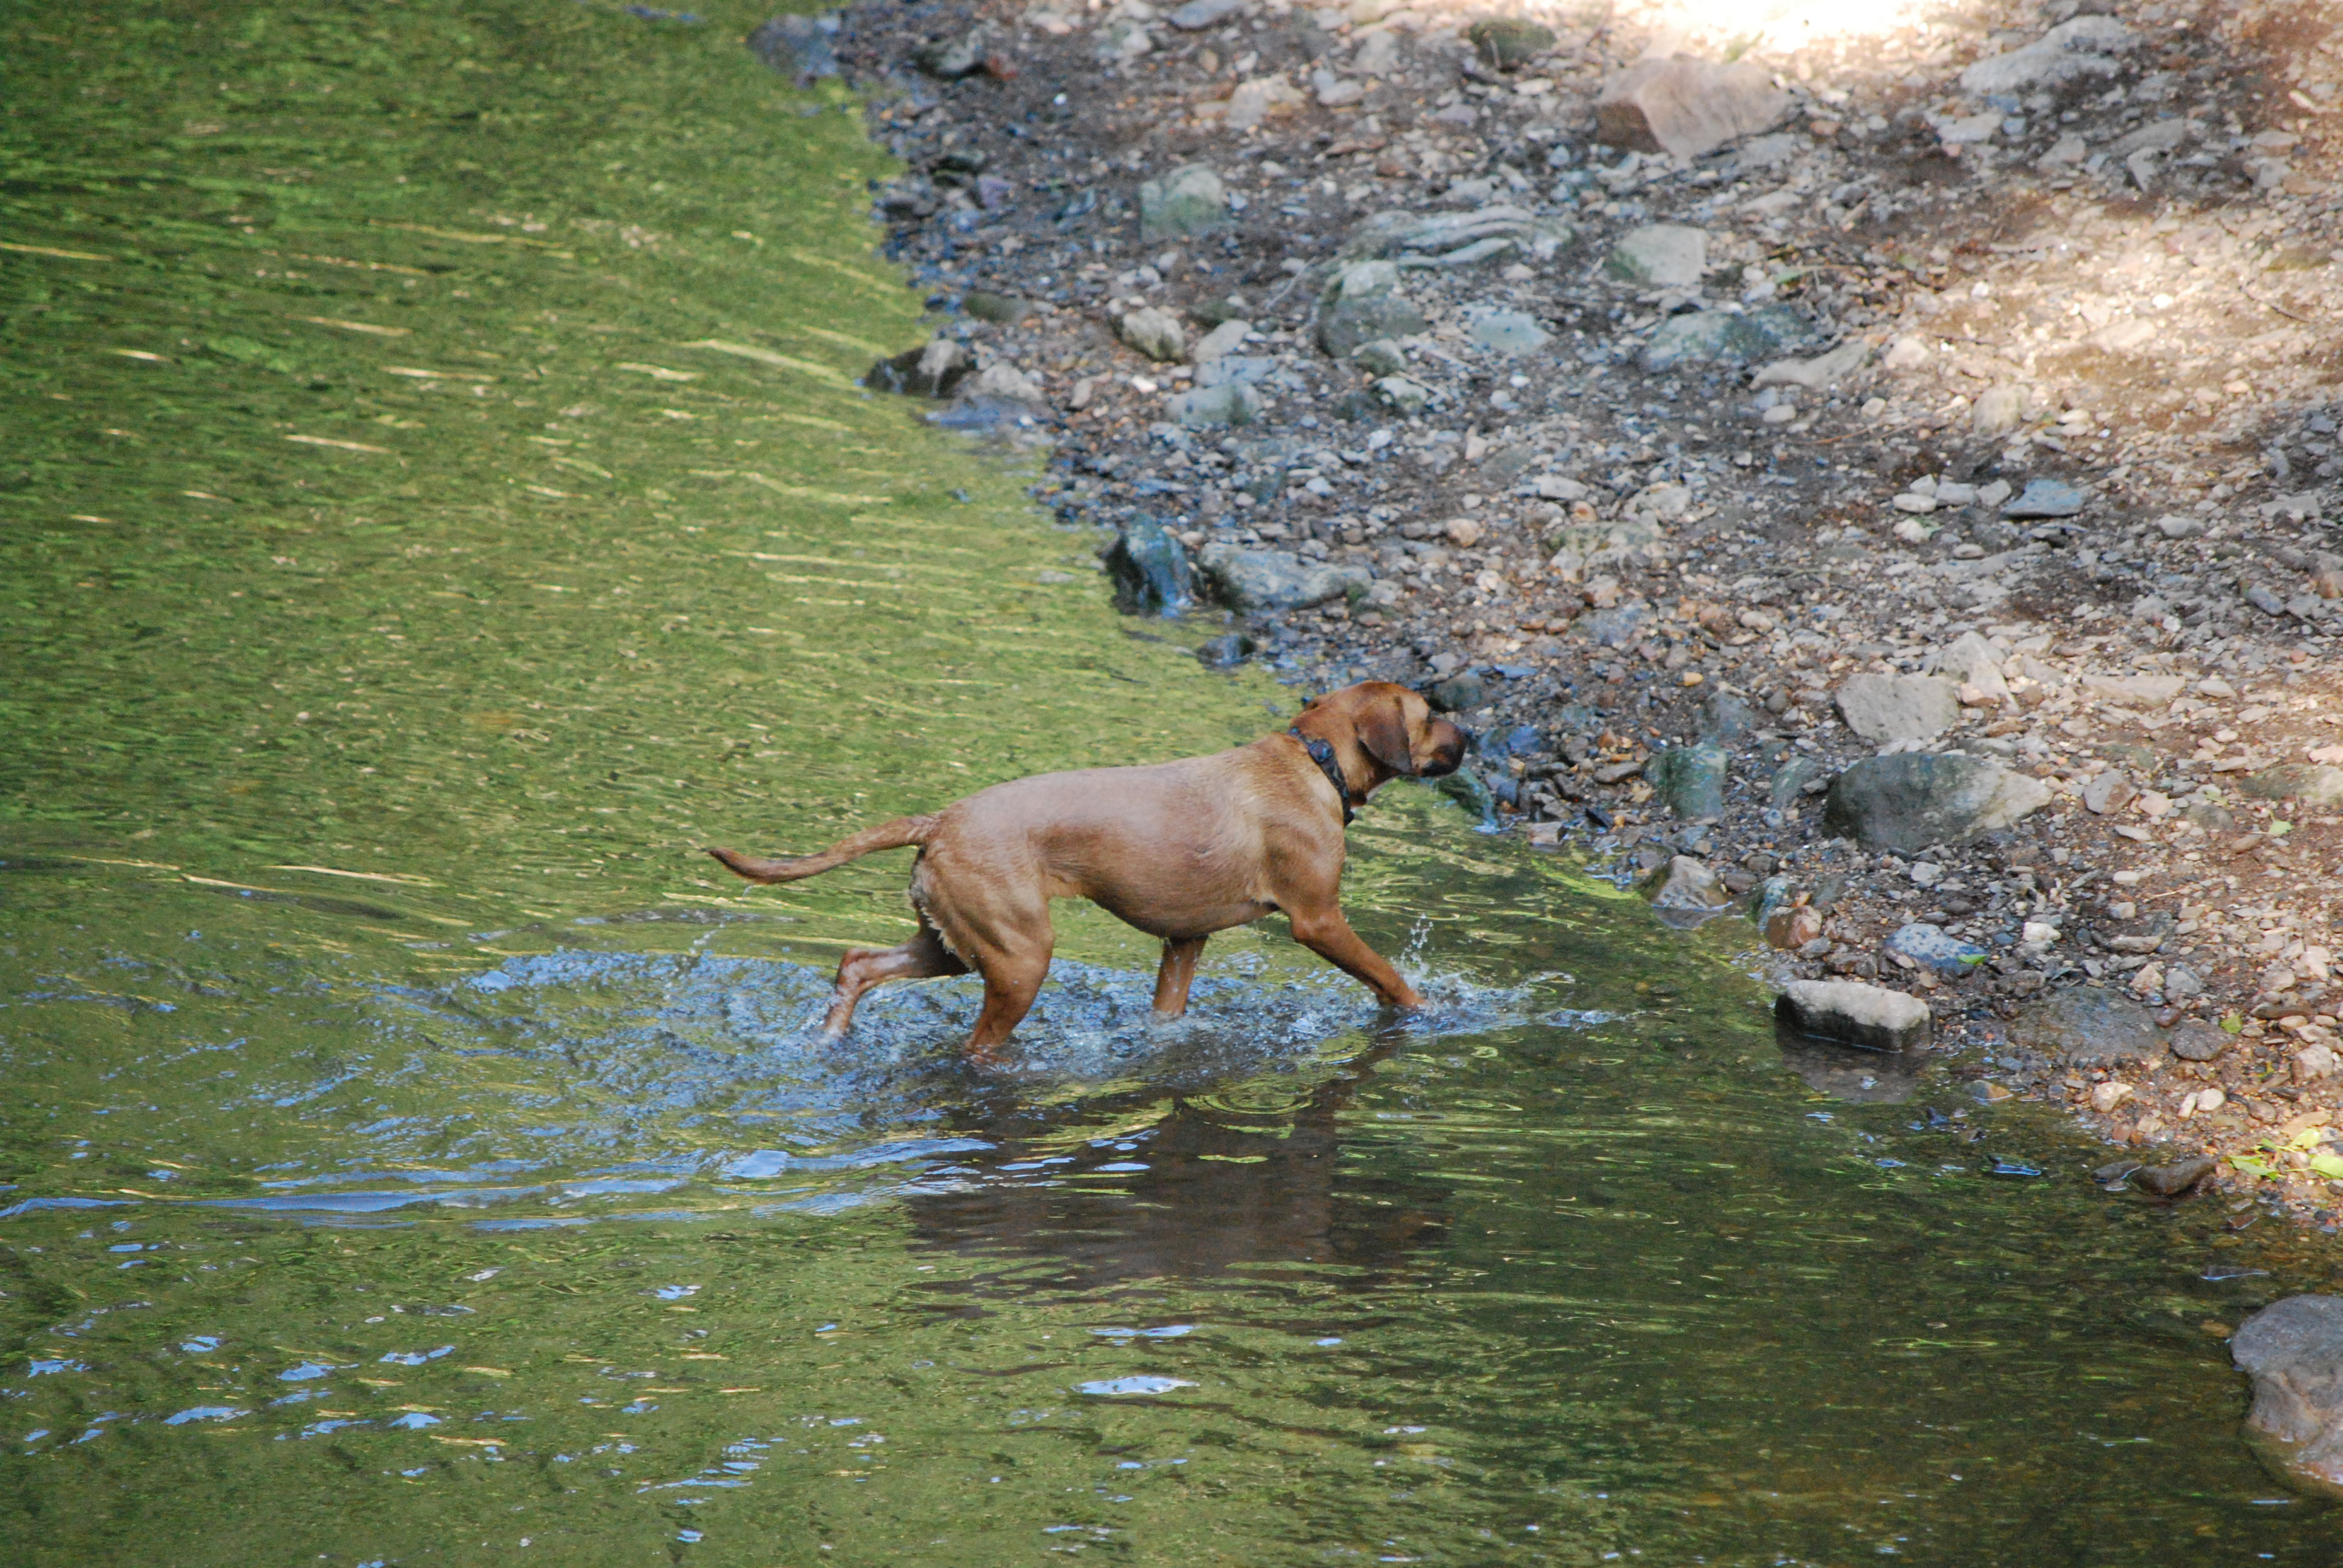 Dogs love wading in water